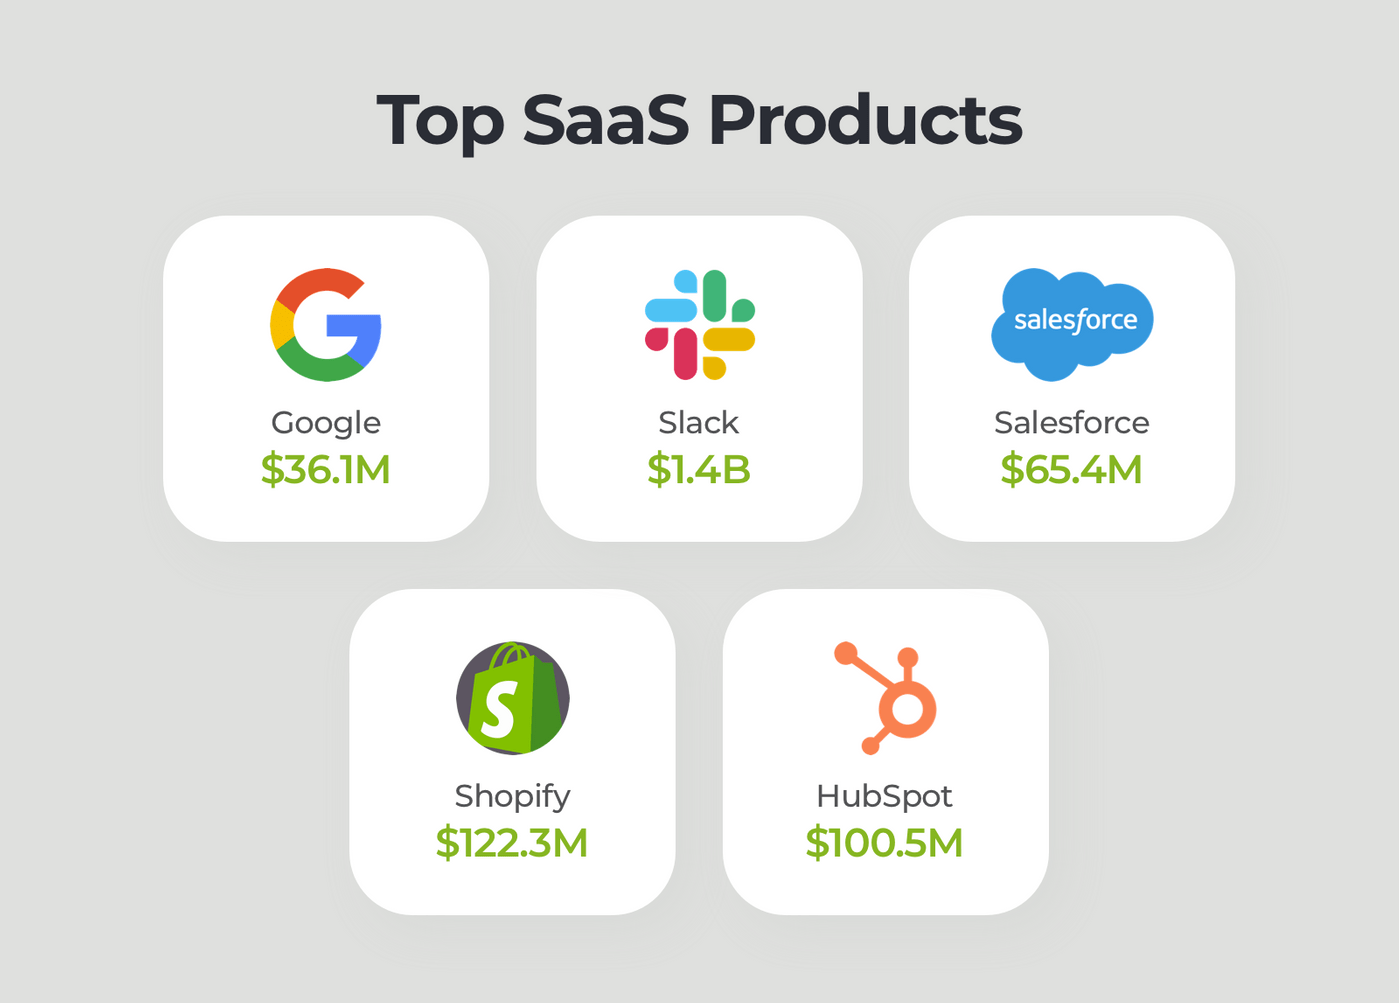 Top SaaS Products